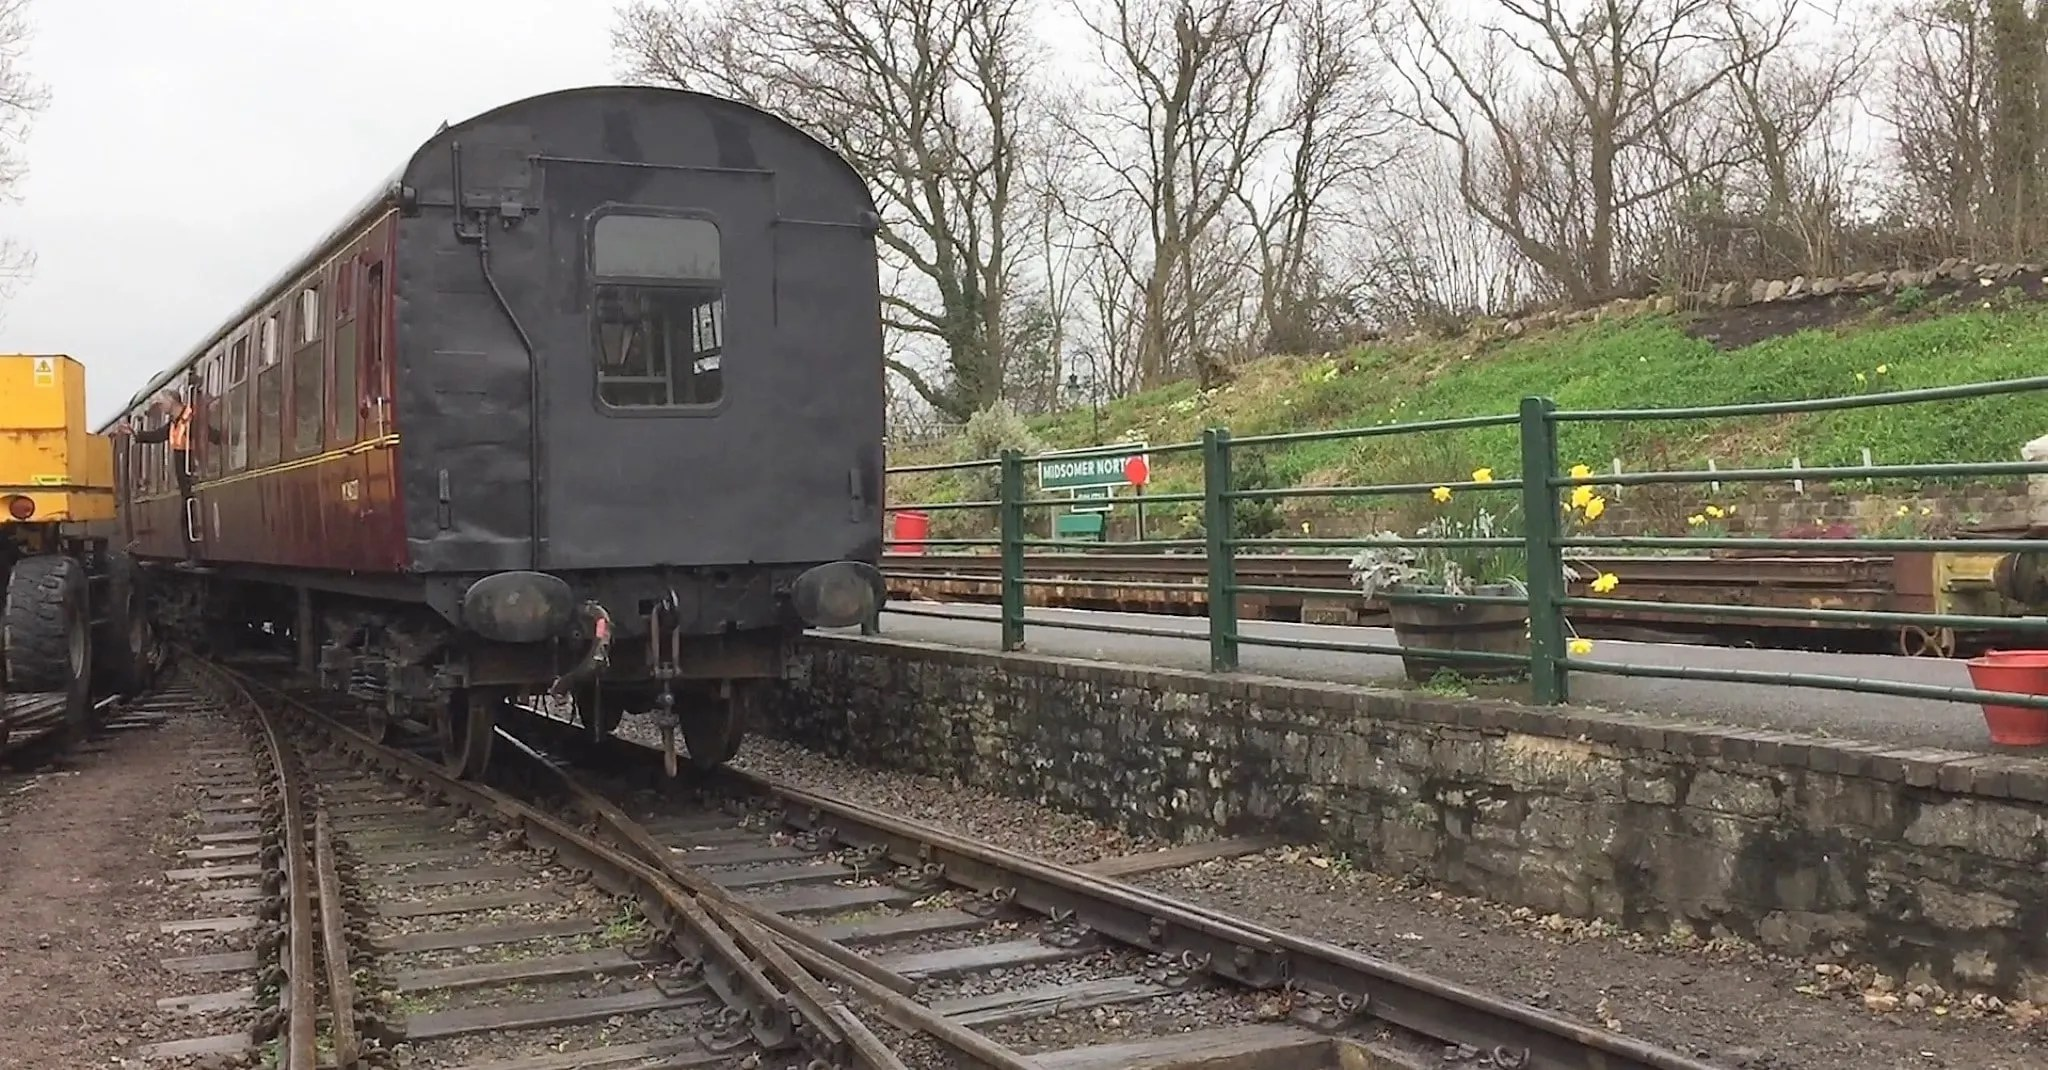 Mark 1 carriage BSK M34527 being shunted ready for loading